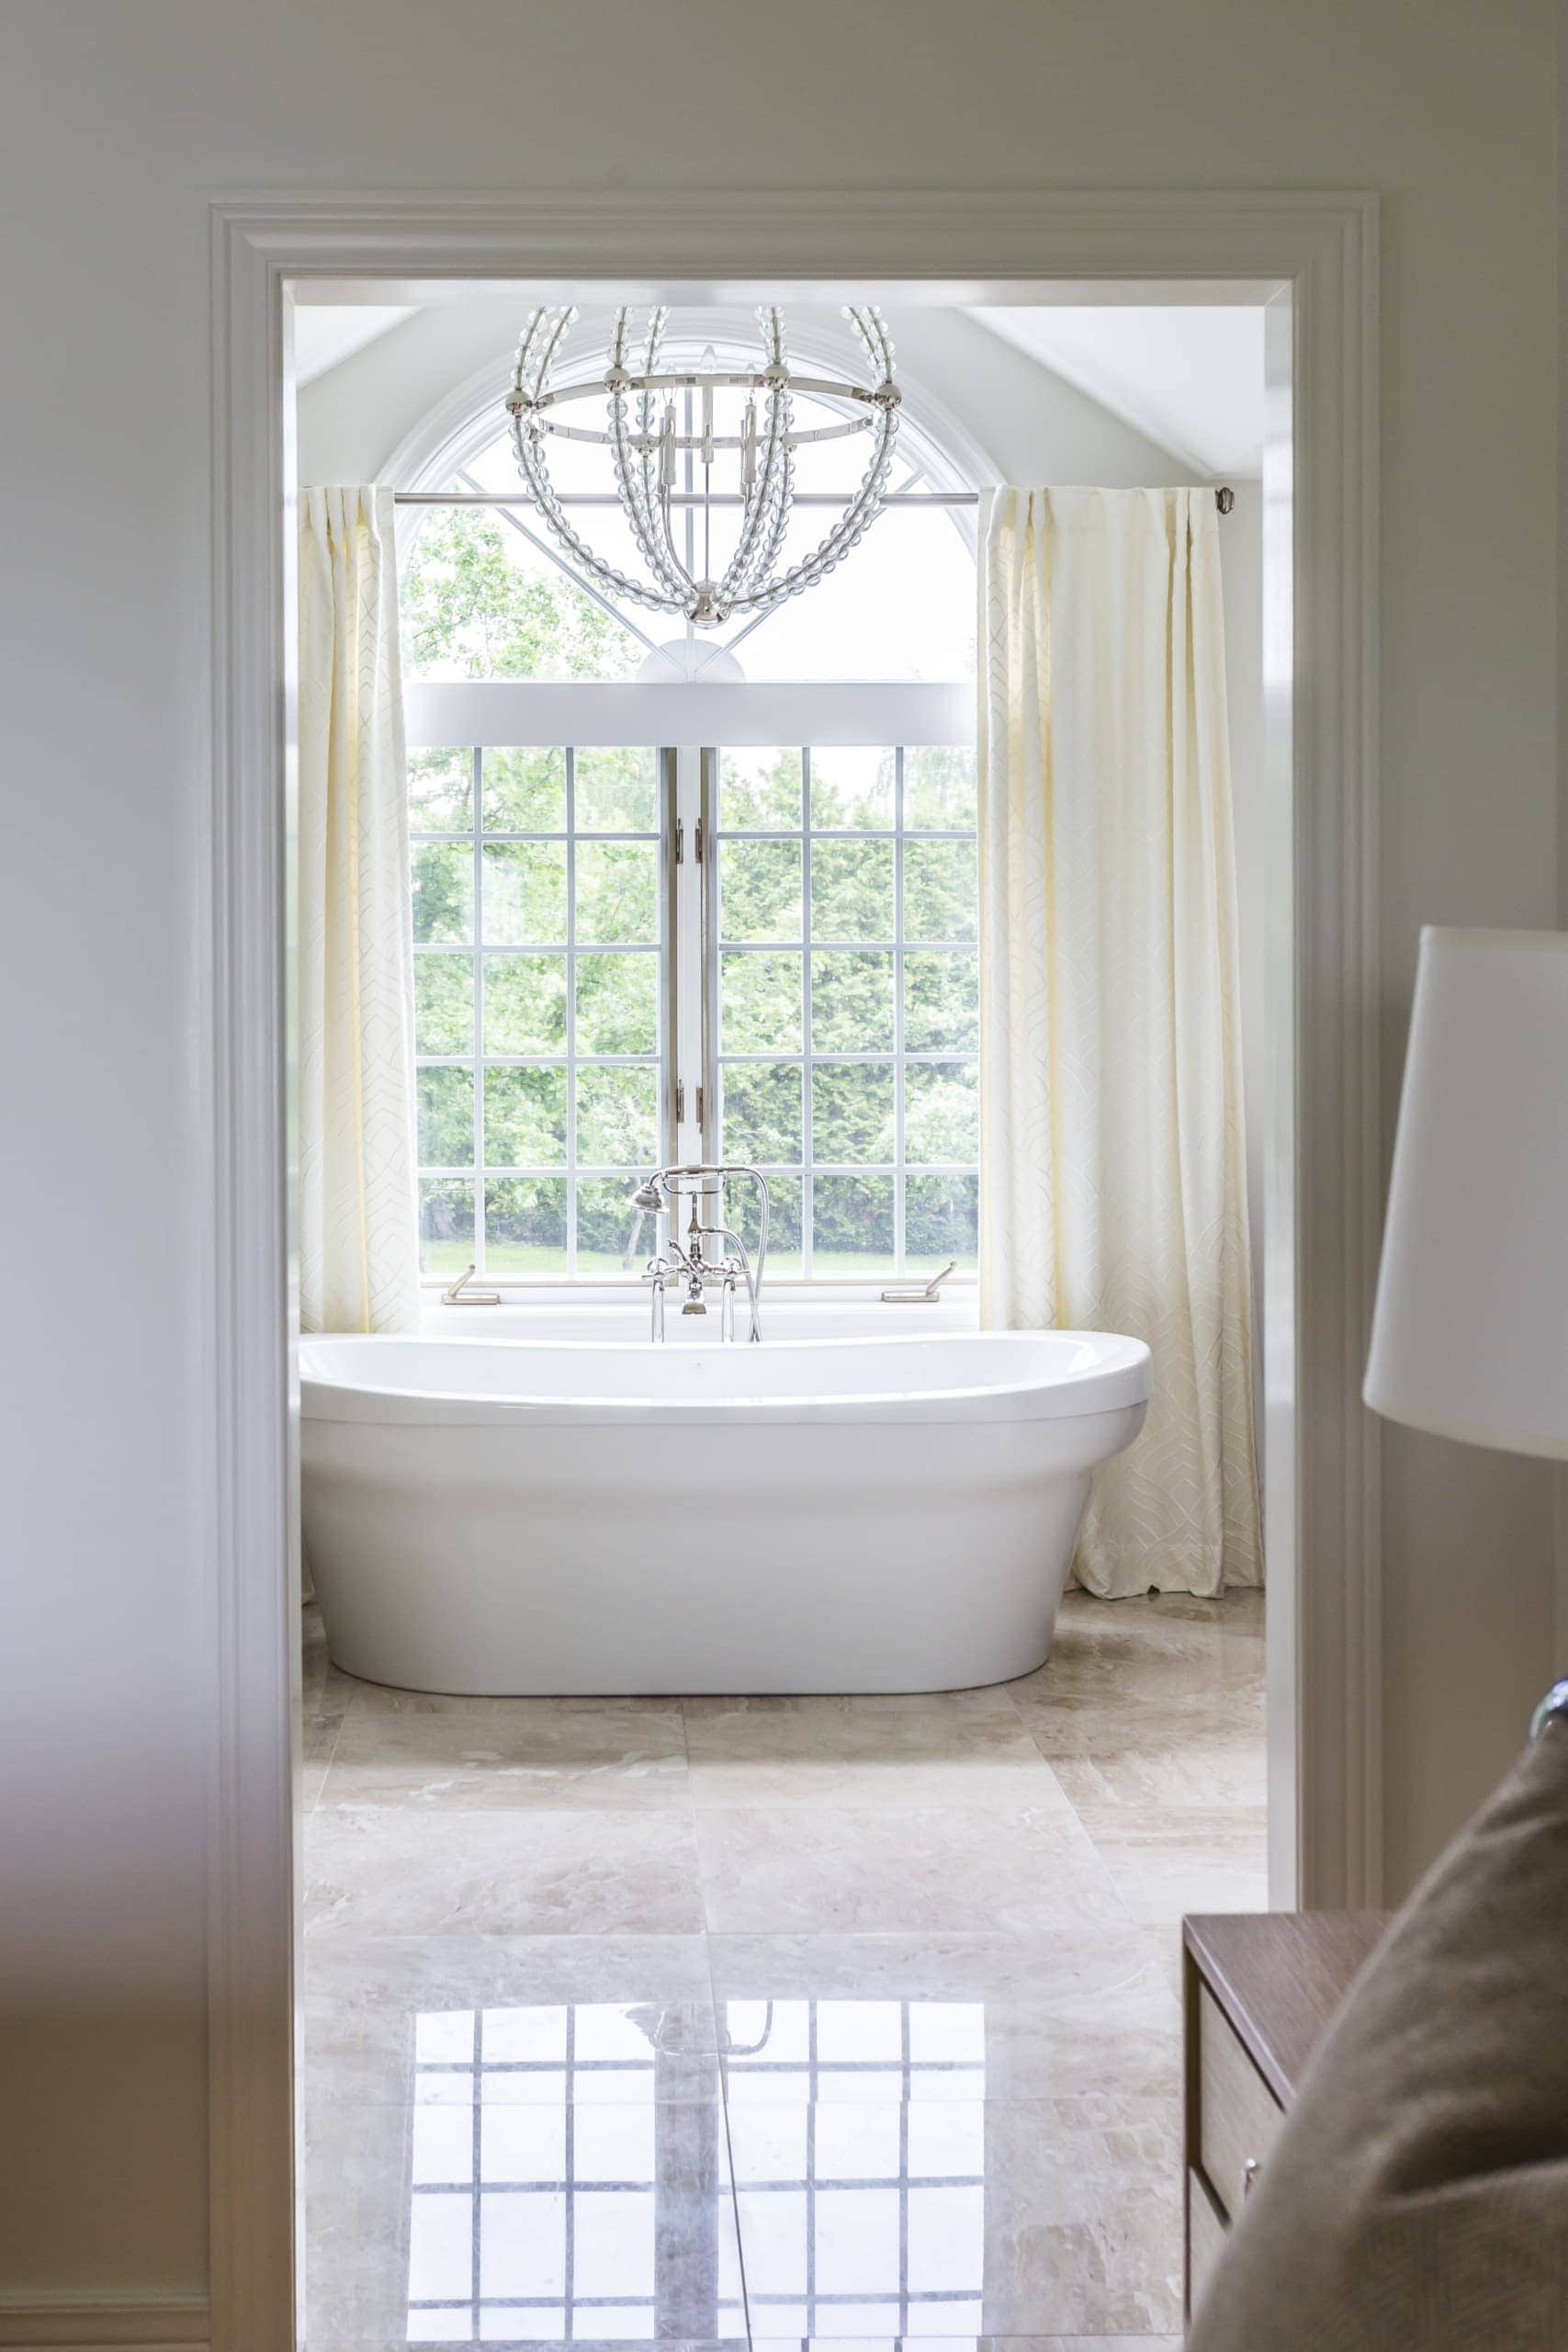 Soaker tub with with a window above it inside a bathroom